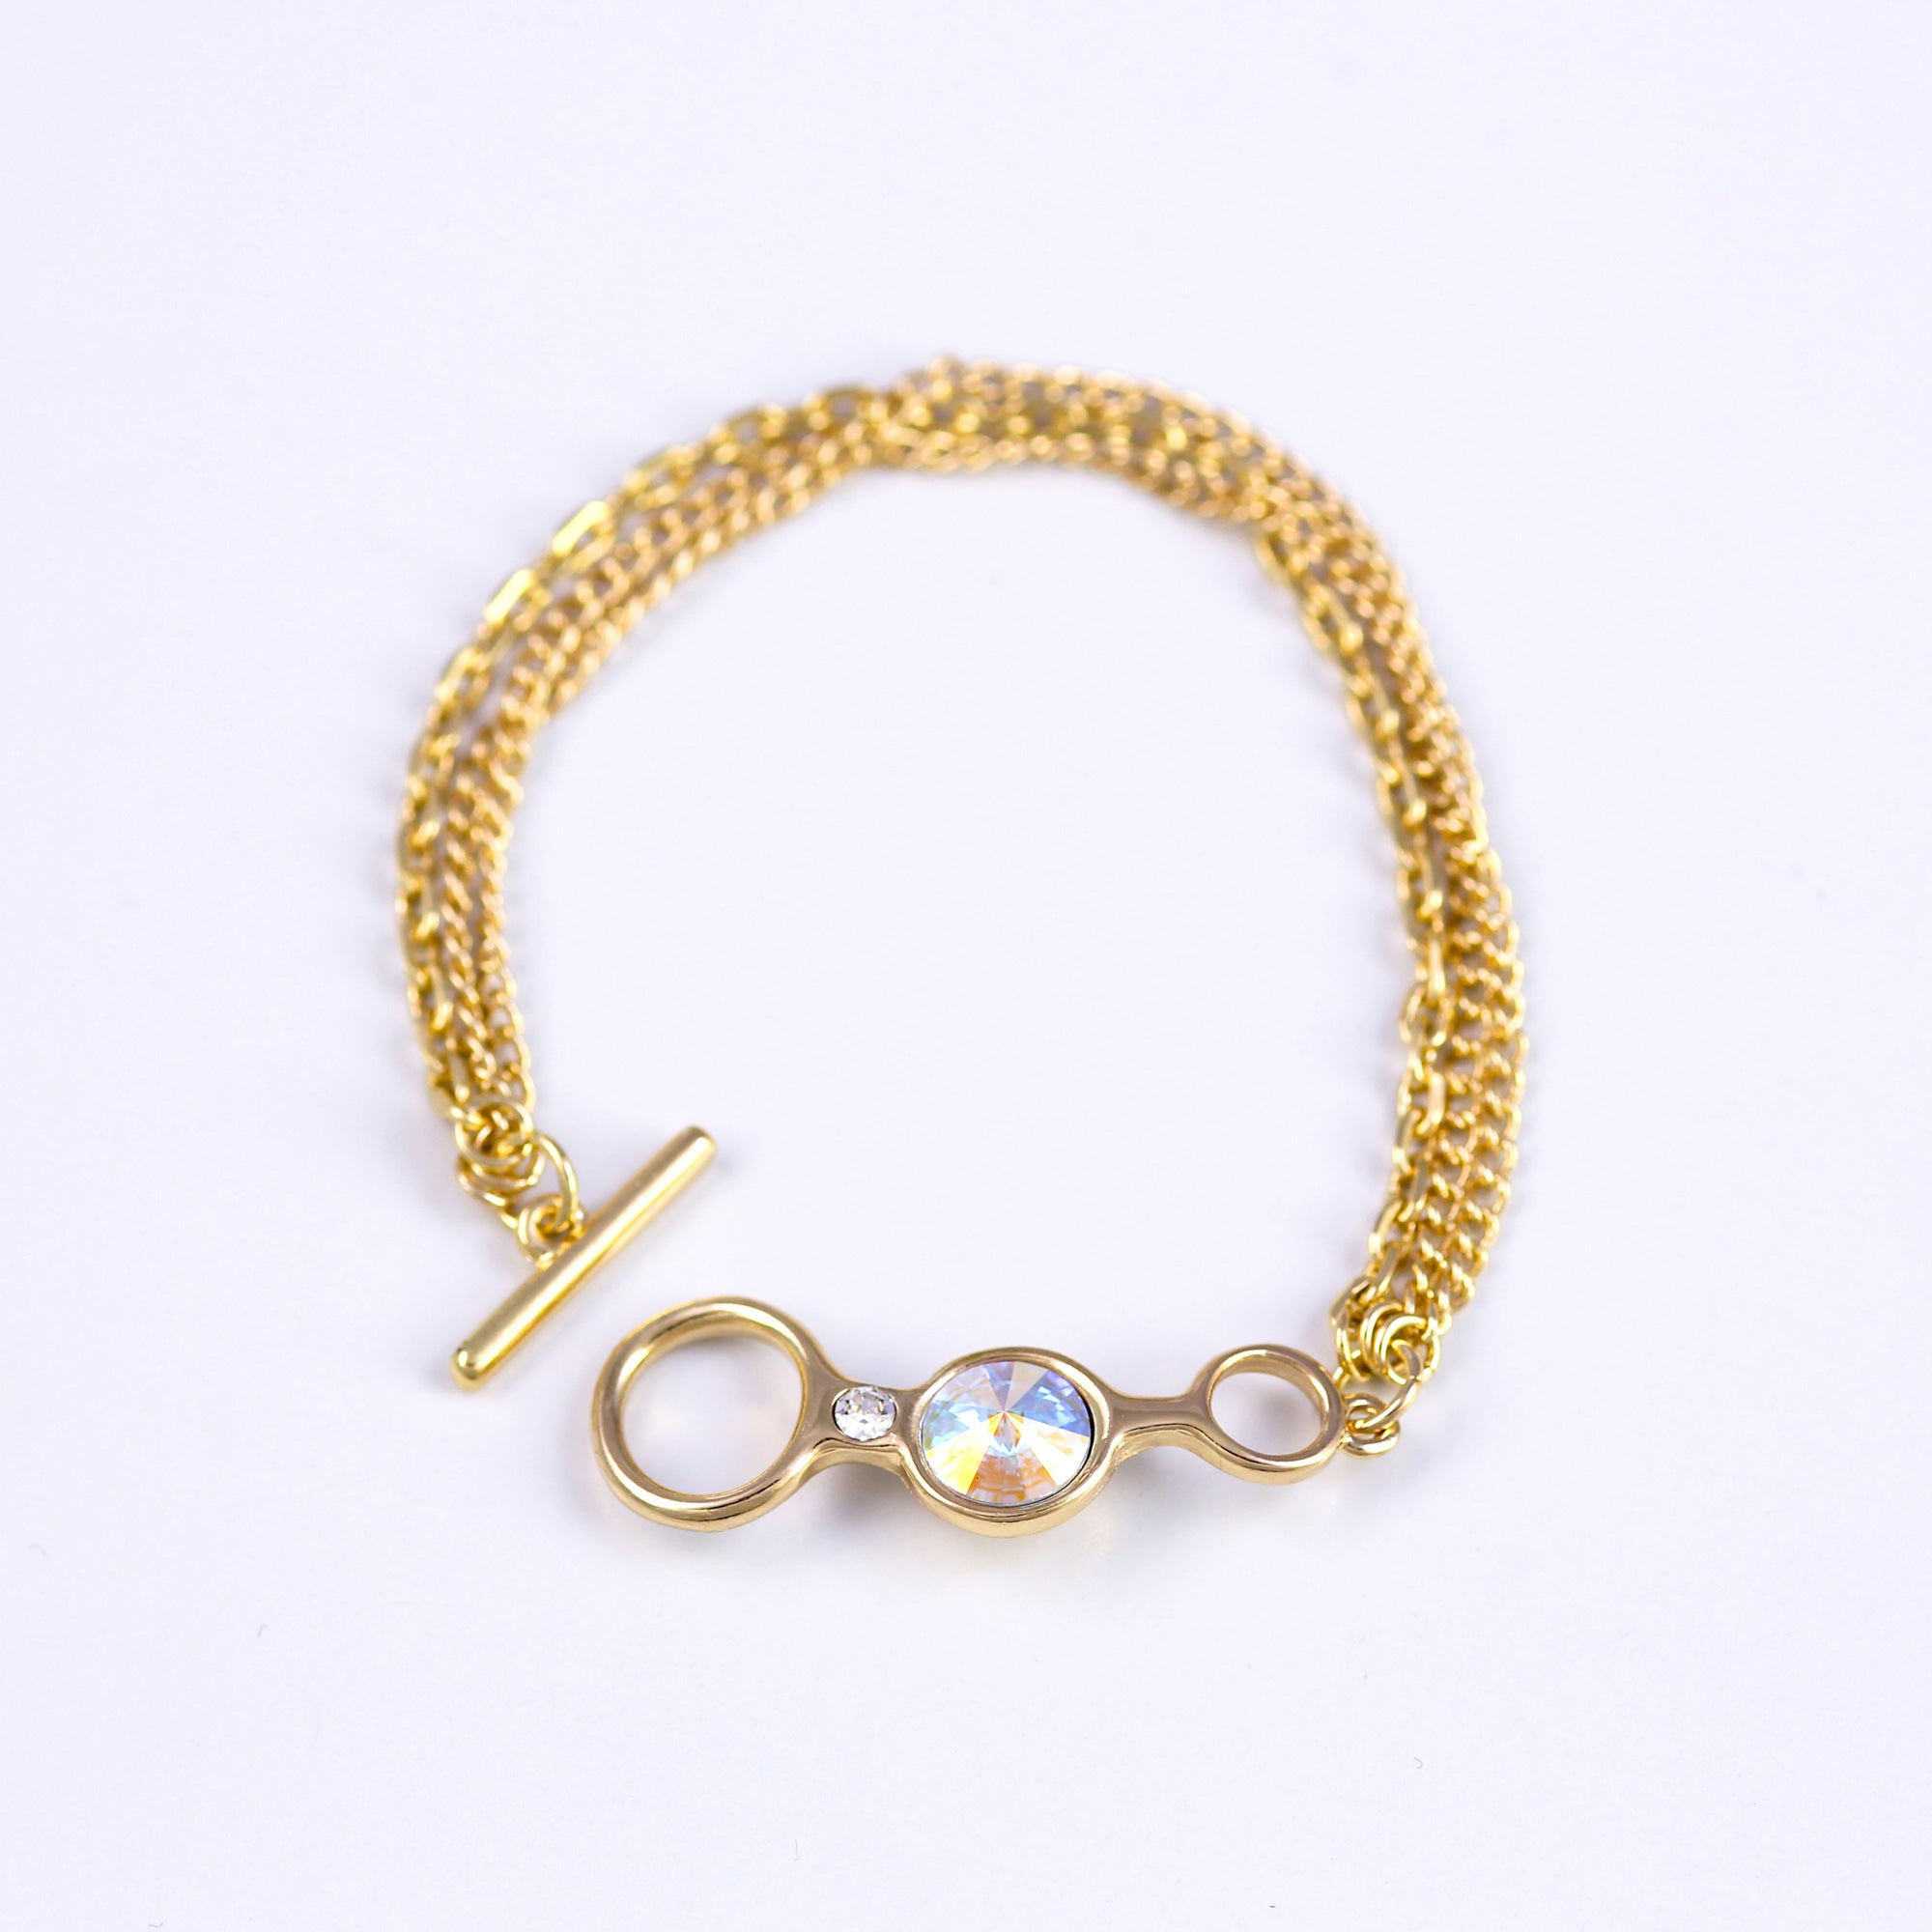 T bar Gemstone Bracelet in Gold and Crystal AB